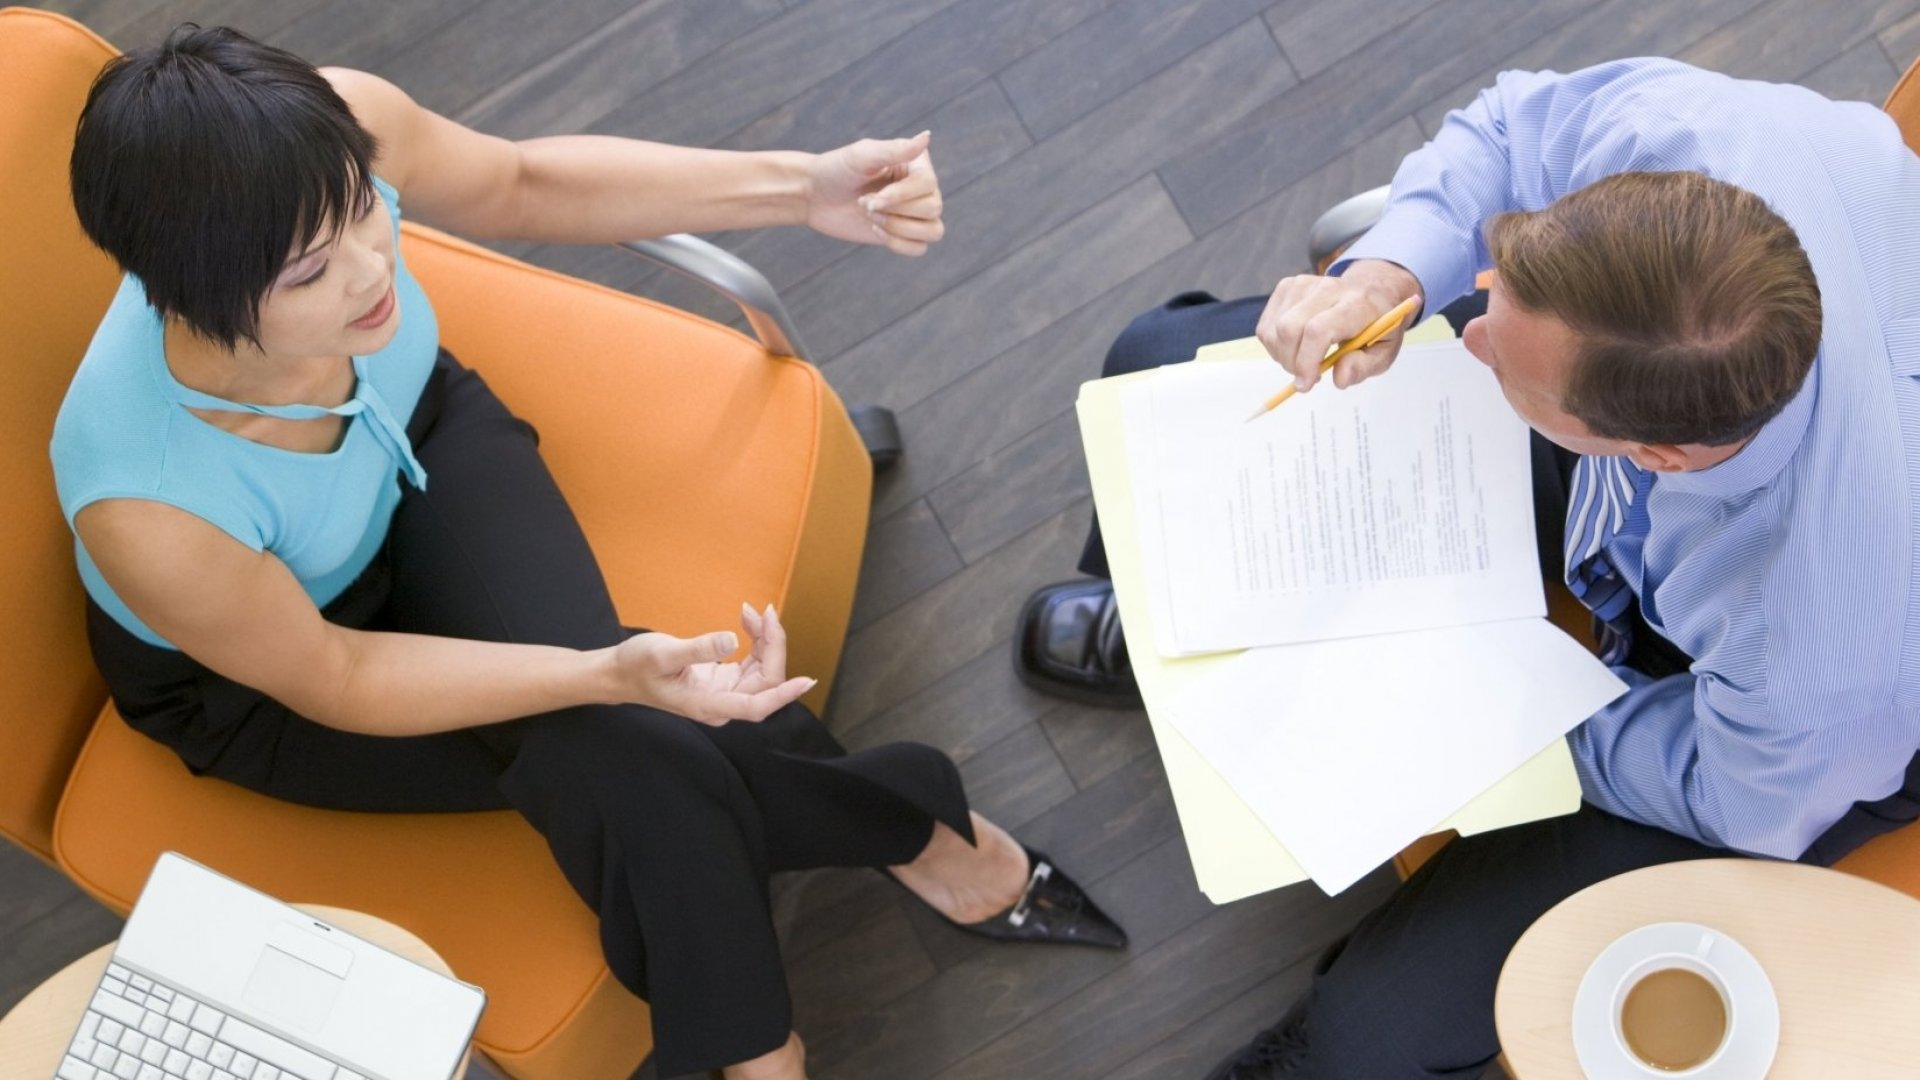 Ask Your Co-Workers These 2 Questions and It Will Supercharge Your Career